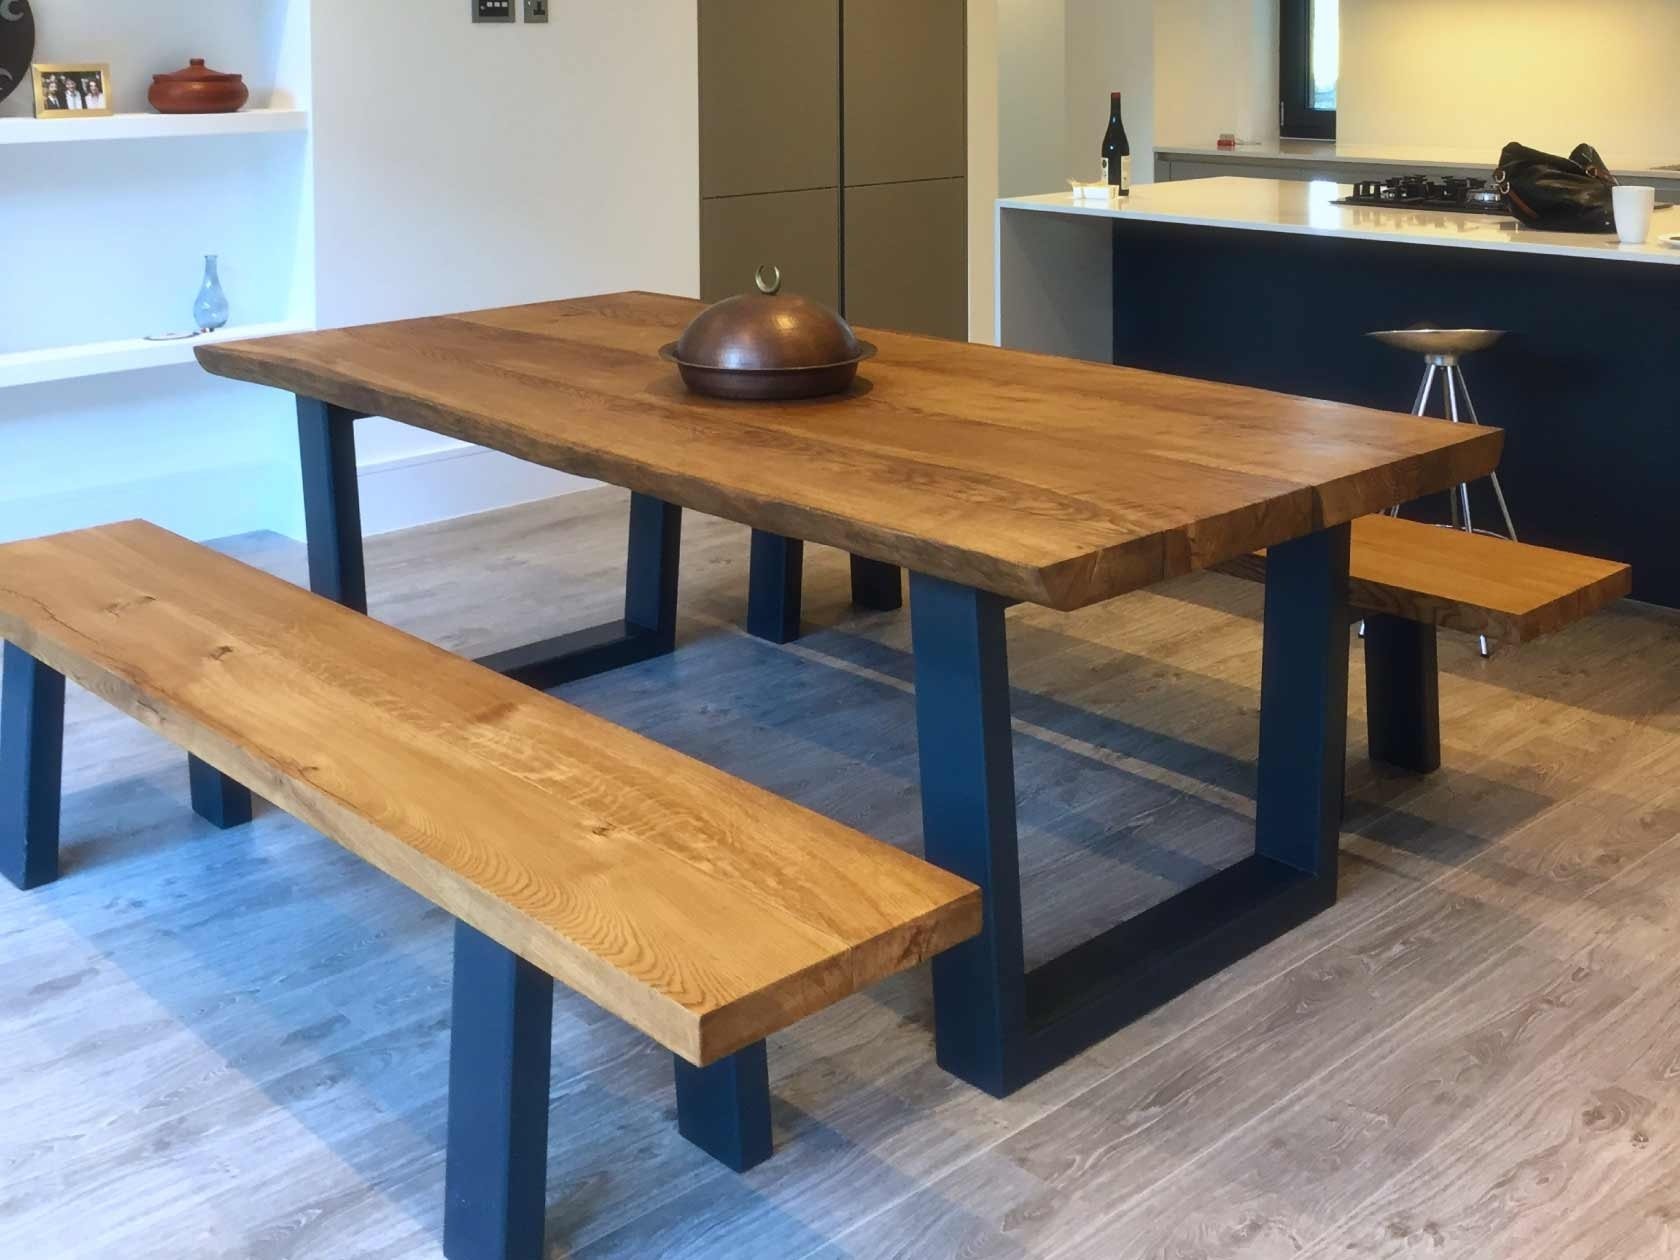 Rustic Dining Tables With Most Recently Released Rustic Dining Table Set With Bench (View 19 of 25)